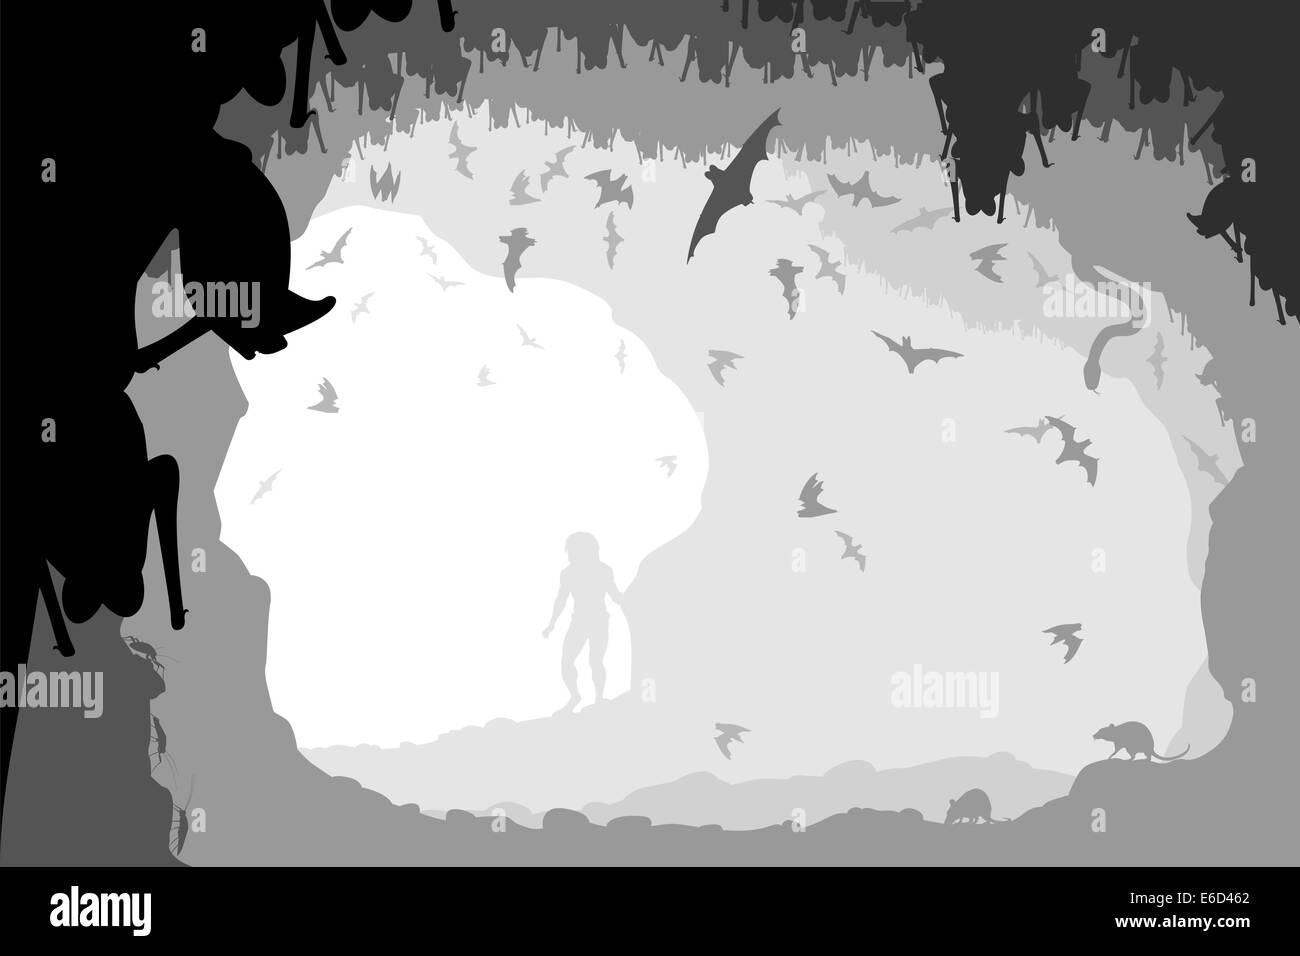 Editable vector illustration of a man at the mouth of a bat cave with all figures as separate objects - Stock Vector